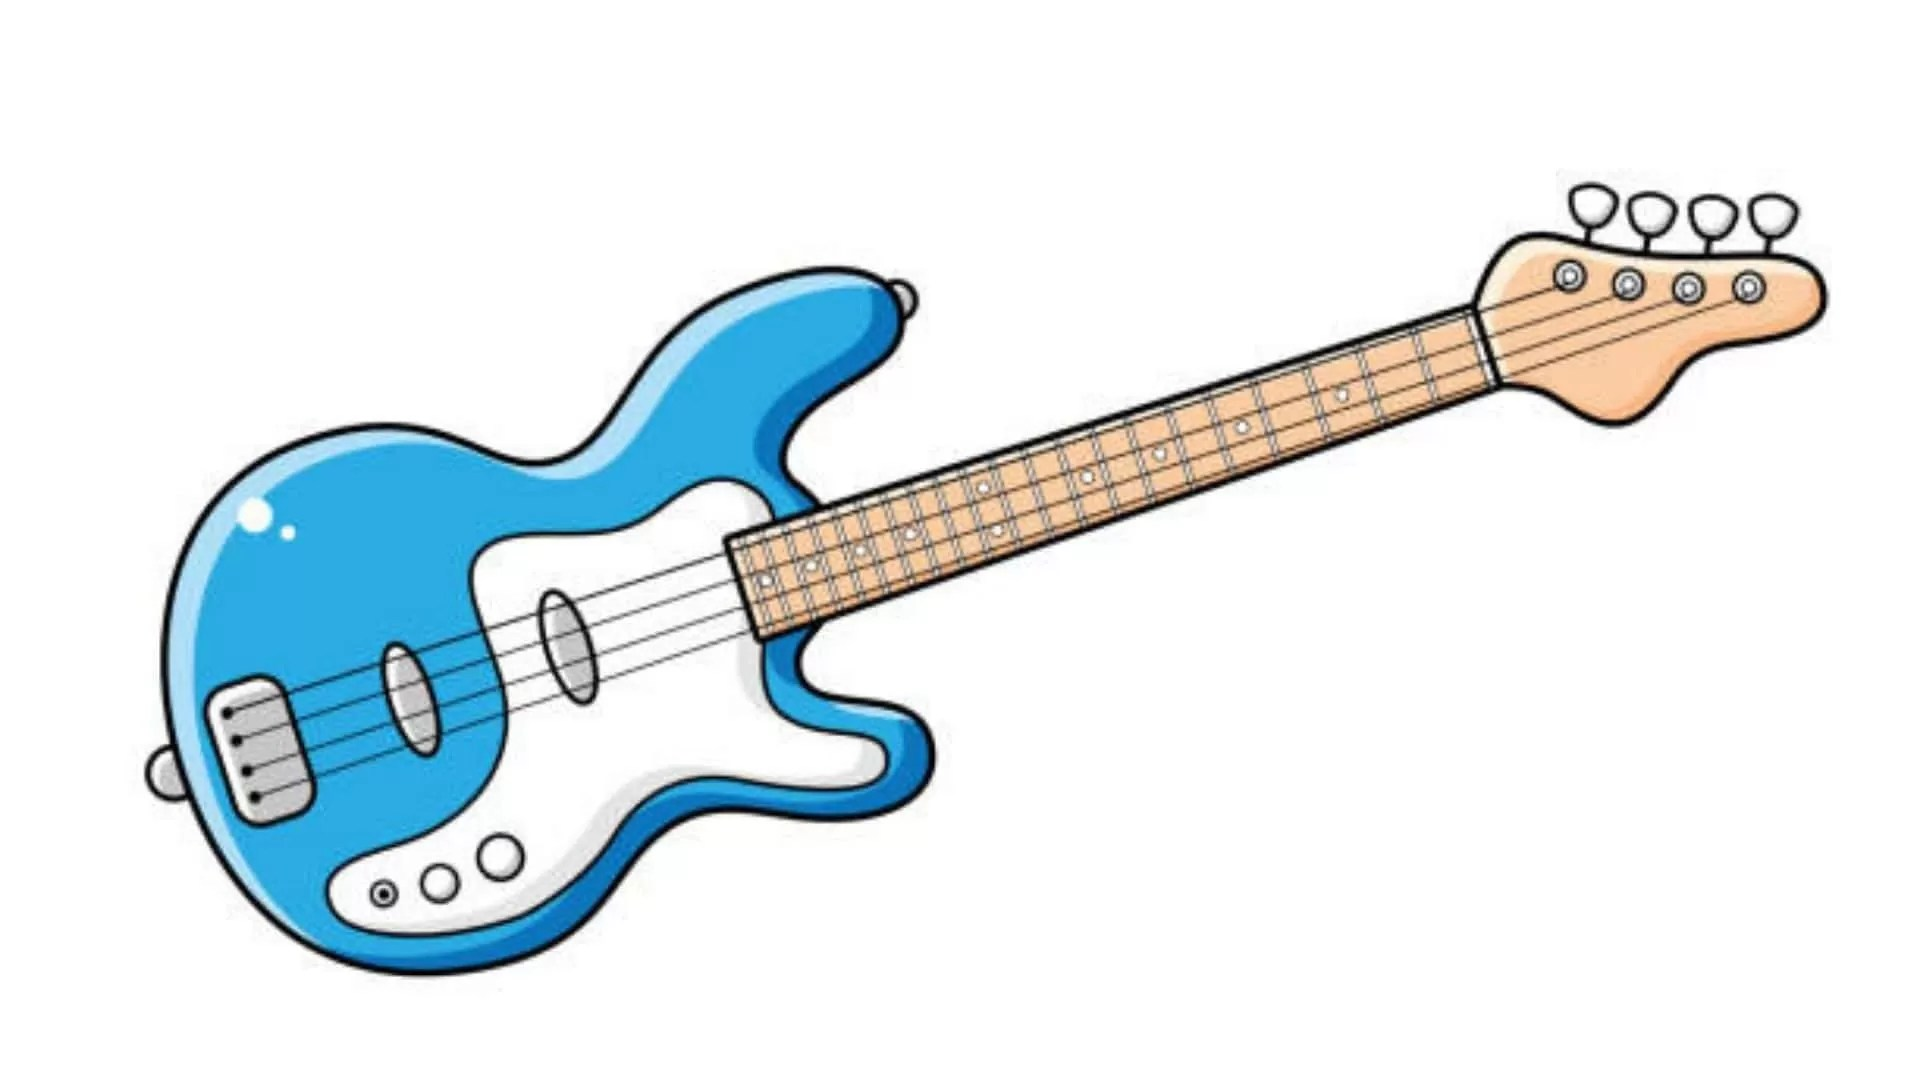 Best Bass Guitars under $500: Top 5 Reviews 2019